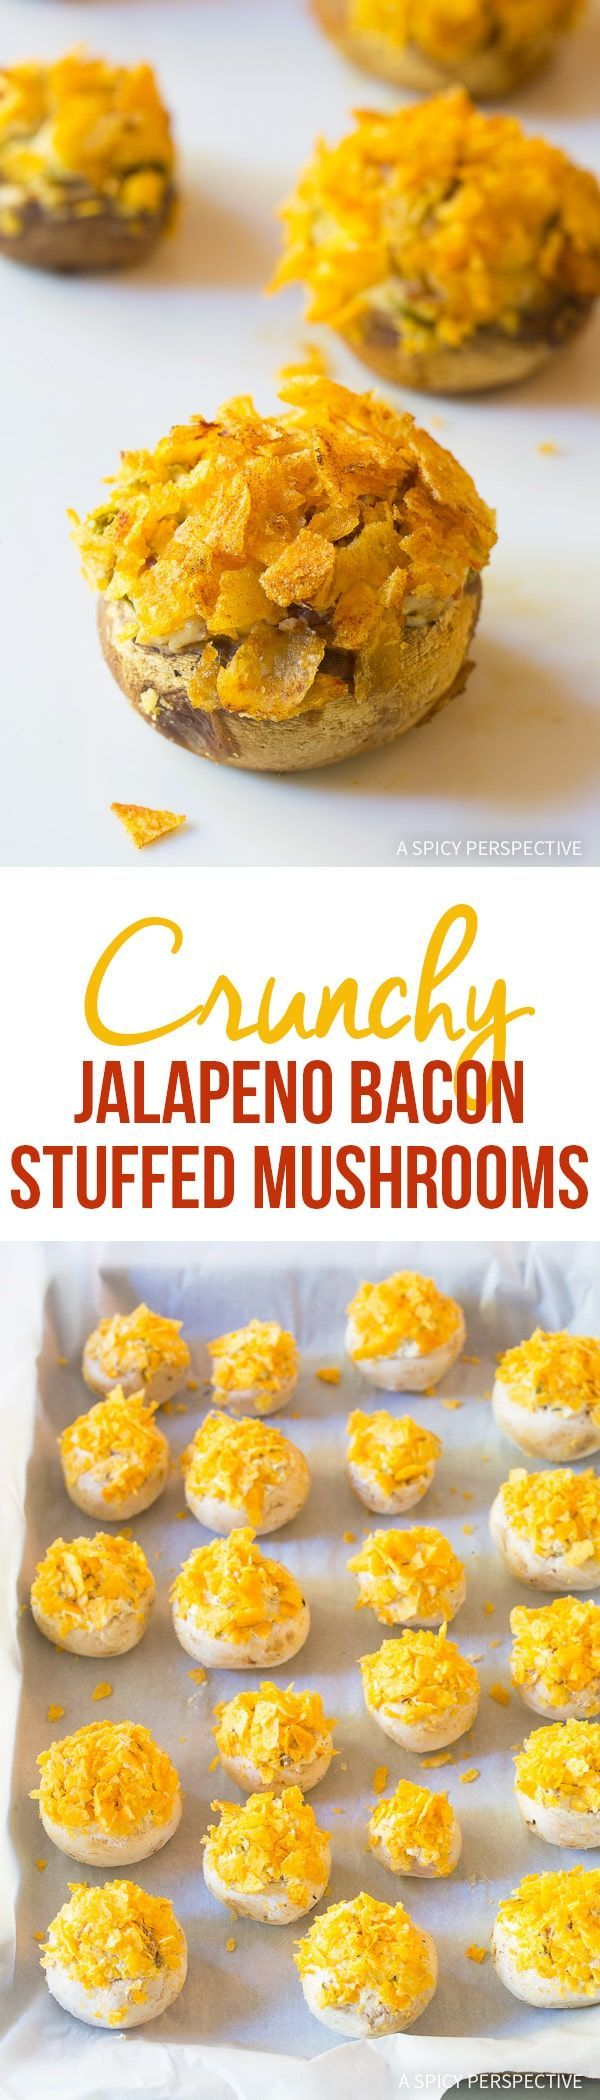 Getting ready for your holiday parties this season? You've got to try our Crunchy Jalapeno Bacon Stuffed Mushrooms, a 5-ingredient party snack with massive wow-factor from @FritoLay Lay's Cheddar & Sour Cream Potato Chips! #mingleinabox #ad